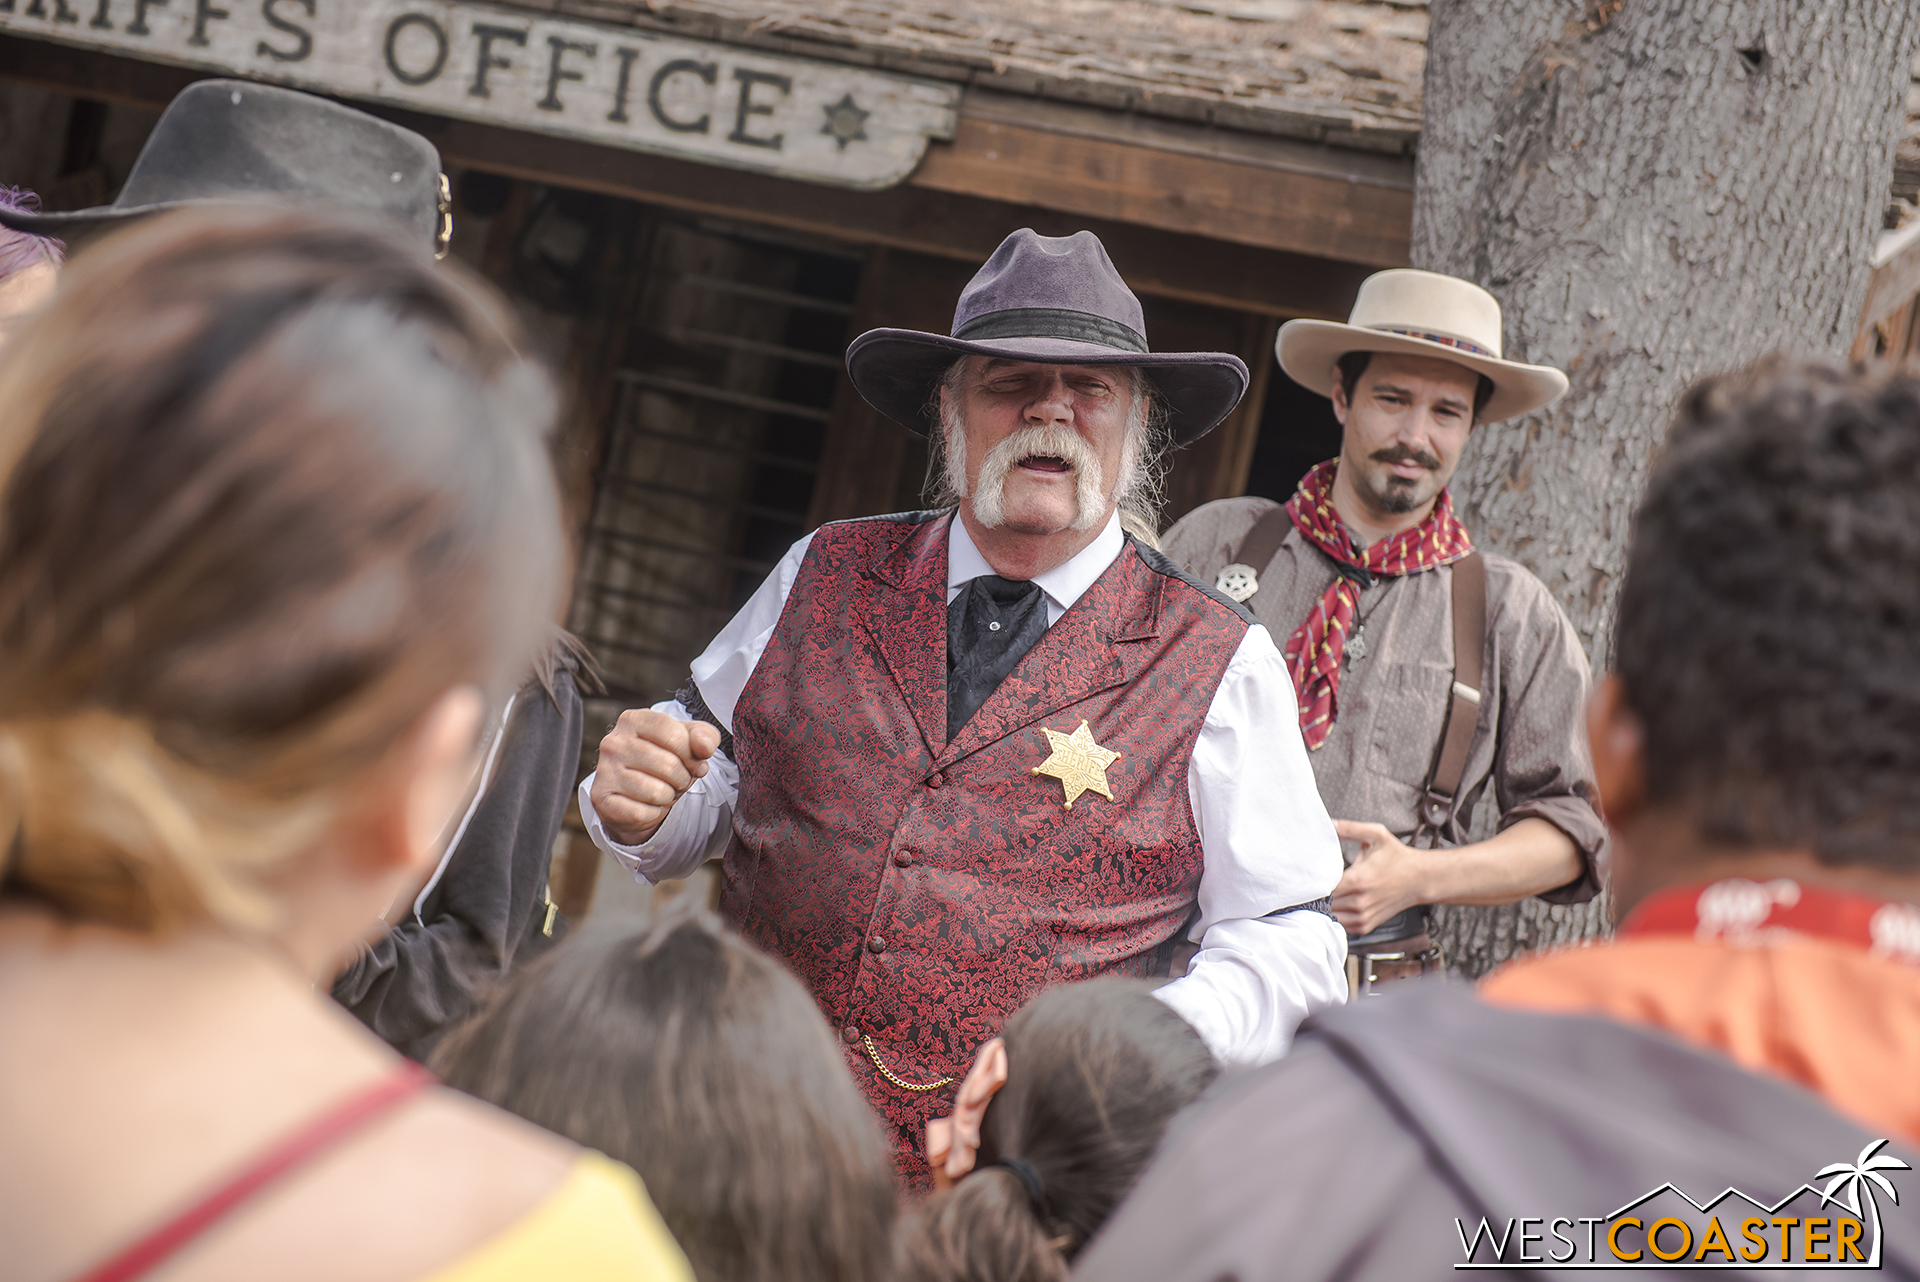 To apprehend the perpetrators, the Sheriff rounds up a posse at 2:30.